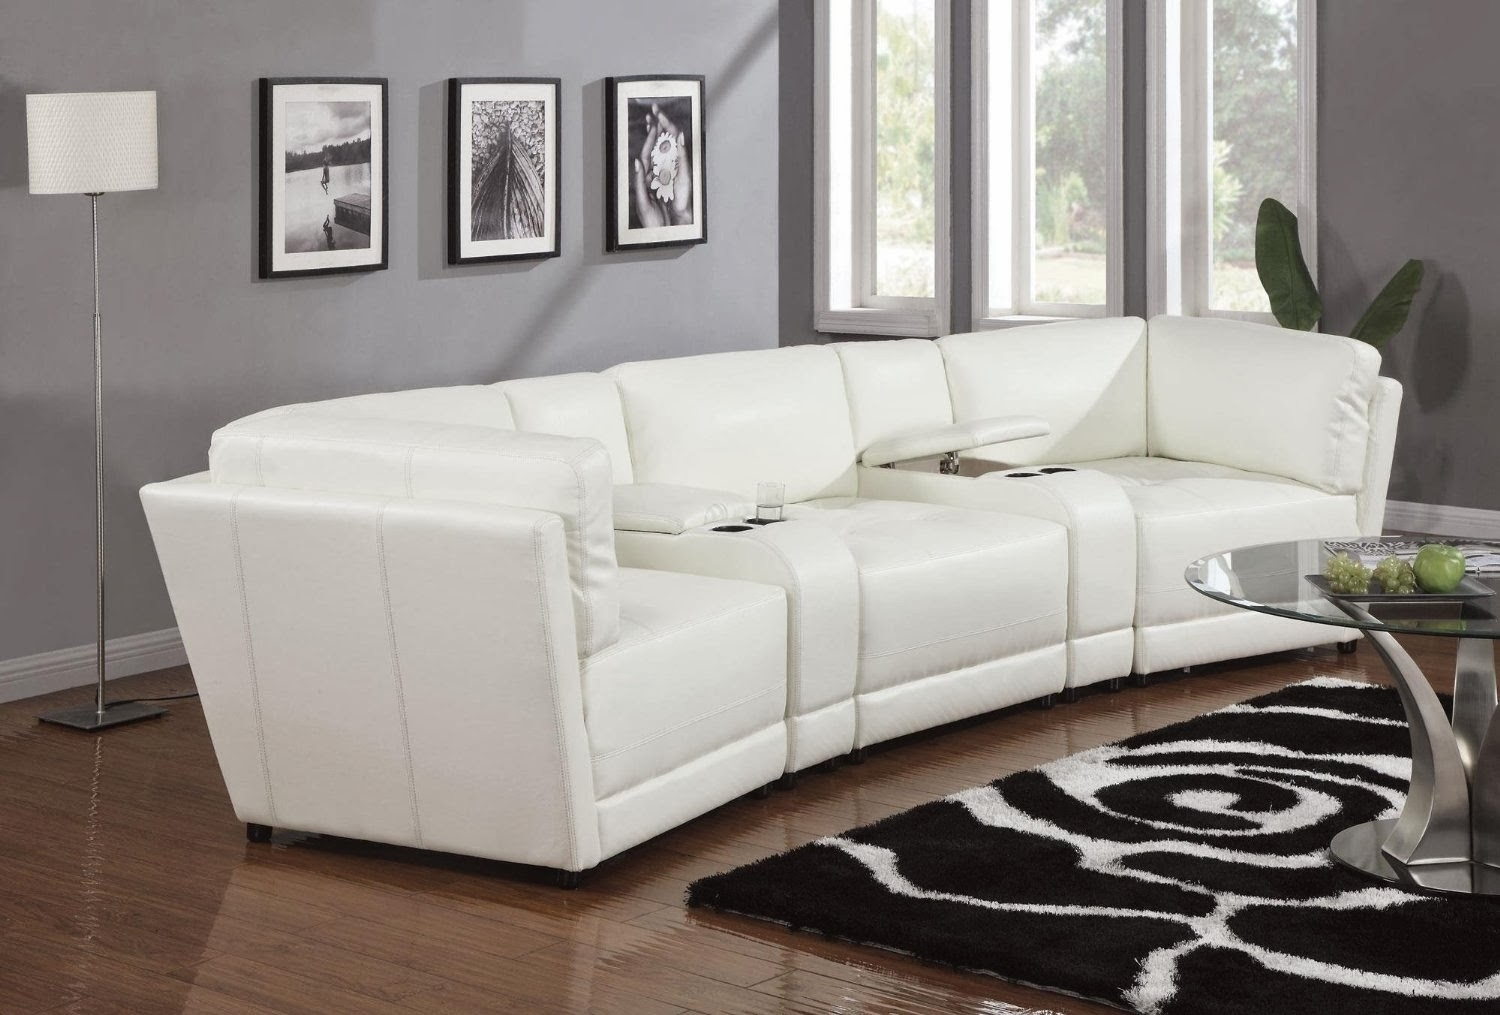 Sectional Sofas Vancouver Bc | Conceptstructuresllc intended for Vancouver Bc Canada Sectional Sofas (Image 7 of 10)